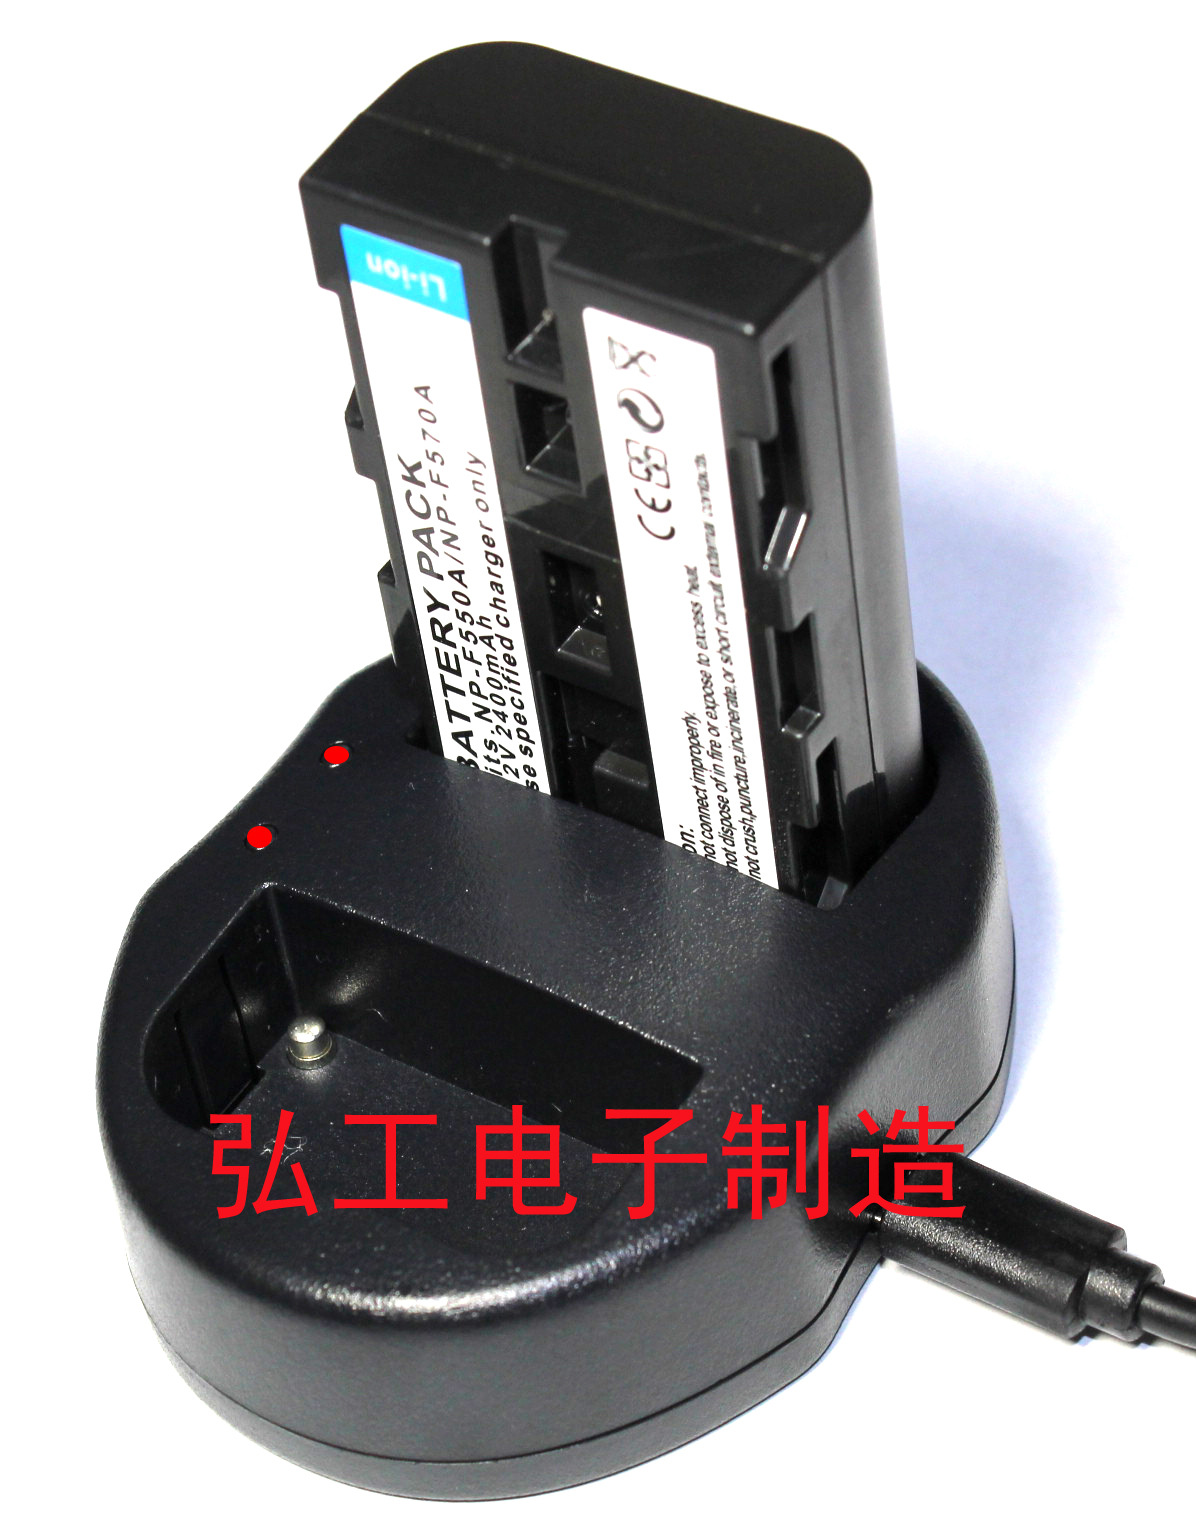 NP-F550 dual charger NP-F550/NP-FM50 USB battery charger<br><br>Aliexpress